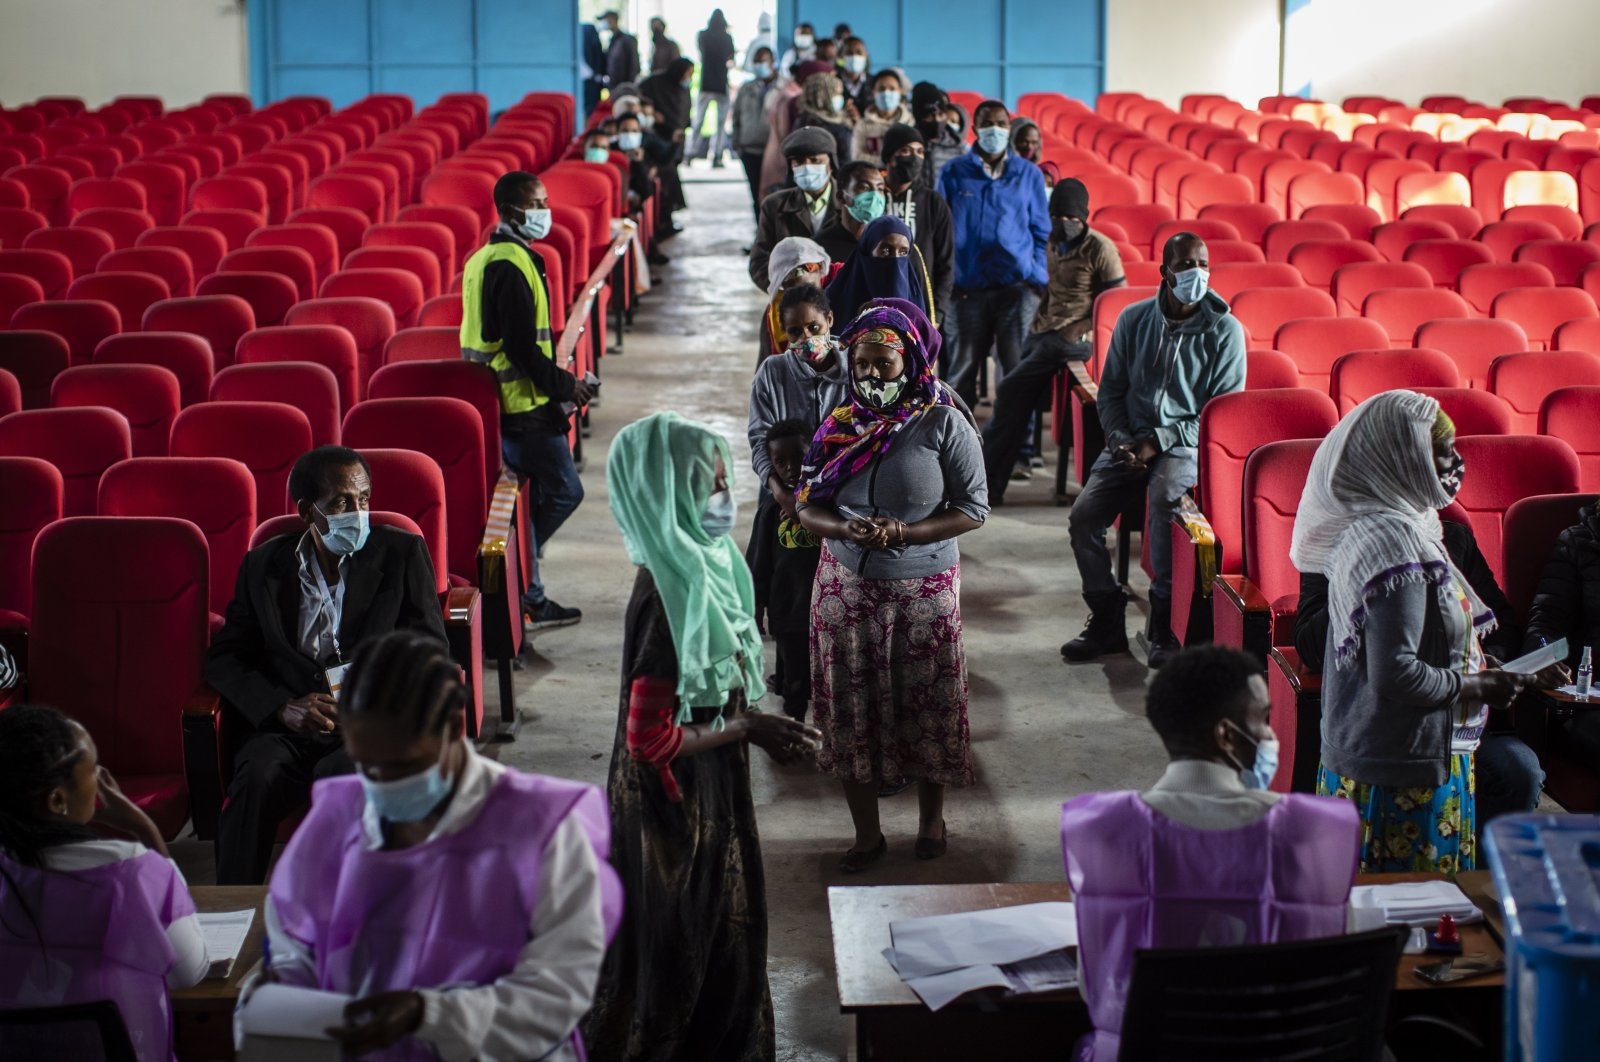 Ethiopians line up to cast their votes in the general election at a polling center in the capital Addis Ababa, Ethiopia, June 21, 2021. (AP Photo)